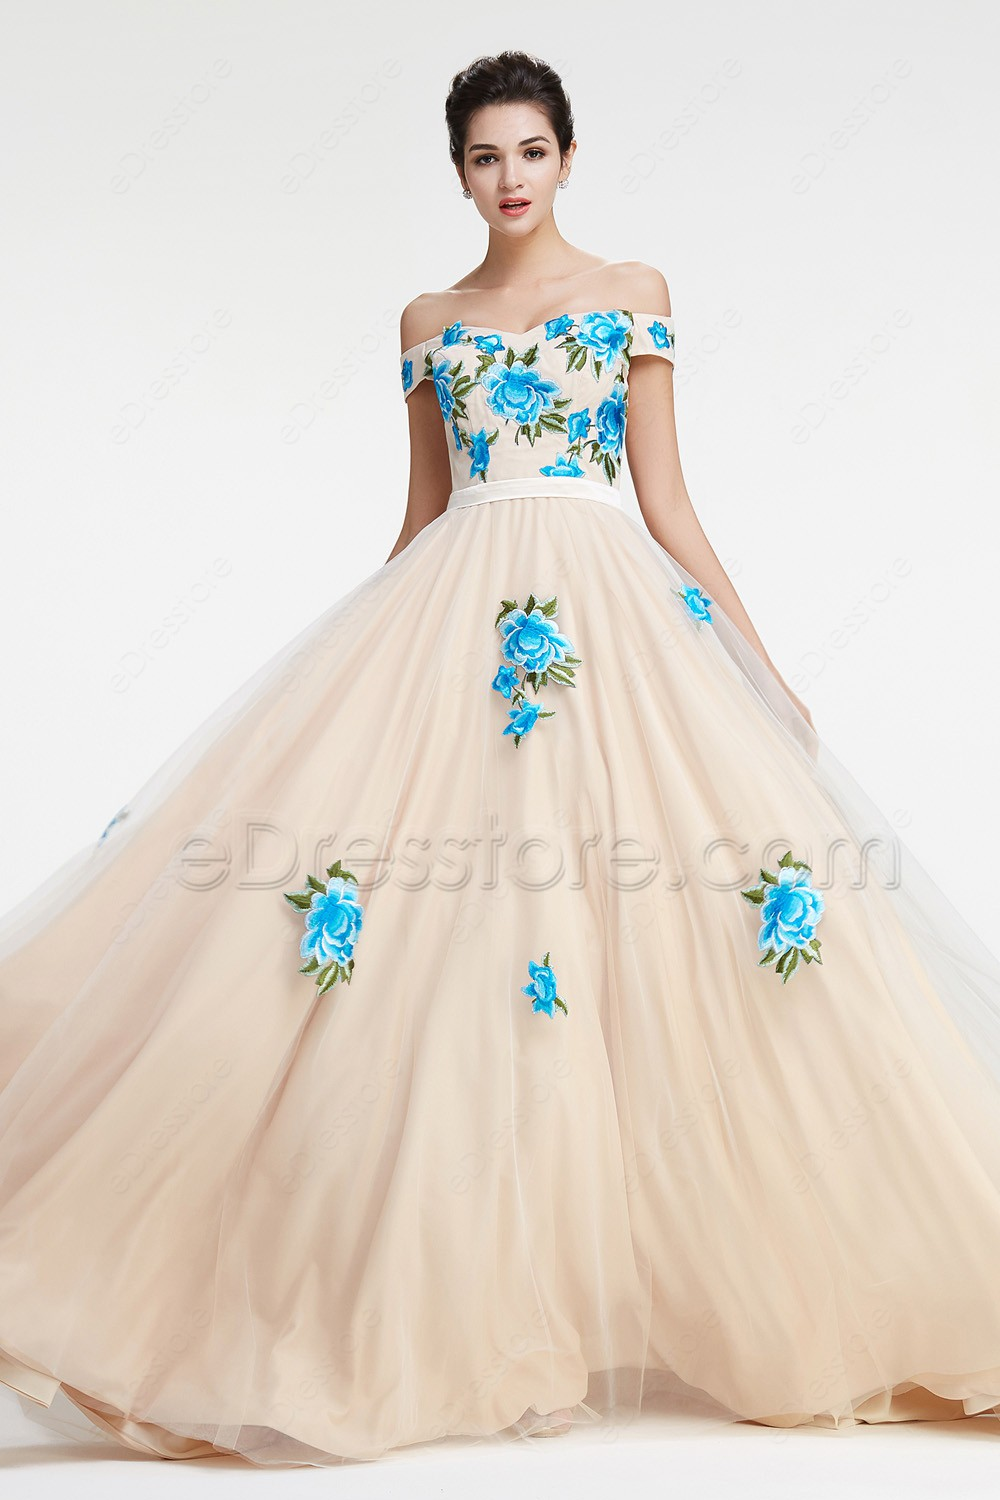 Off the Shoulder Ball Gown Prom Dress with Embroidery